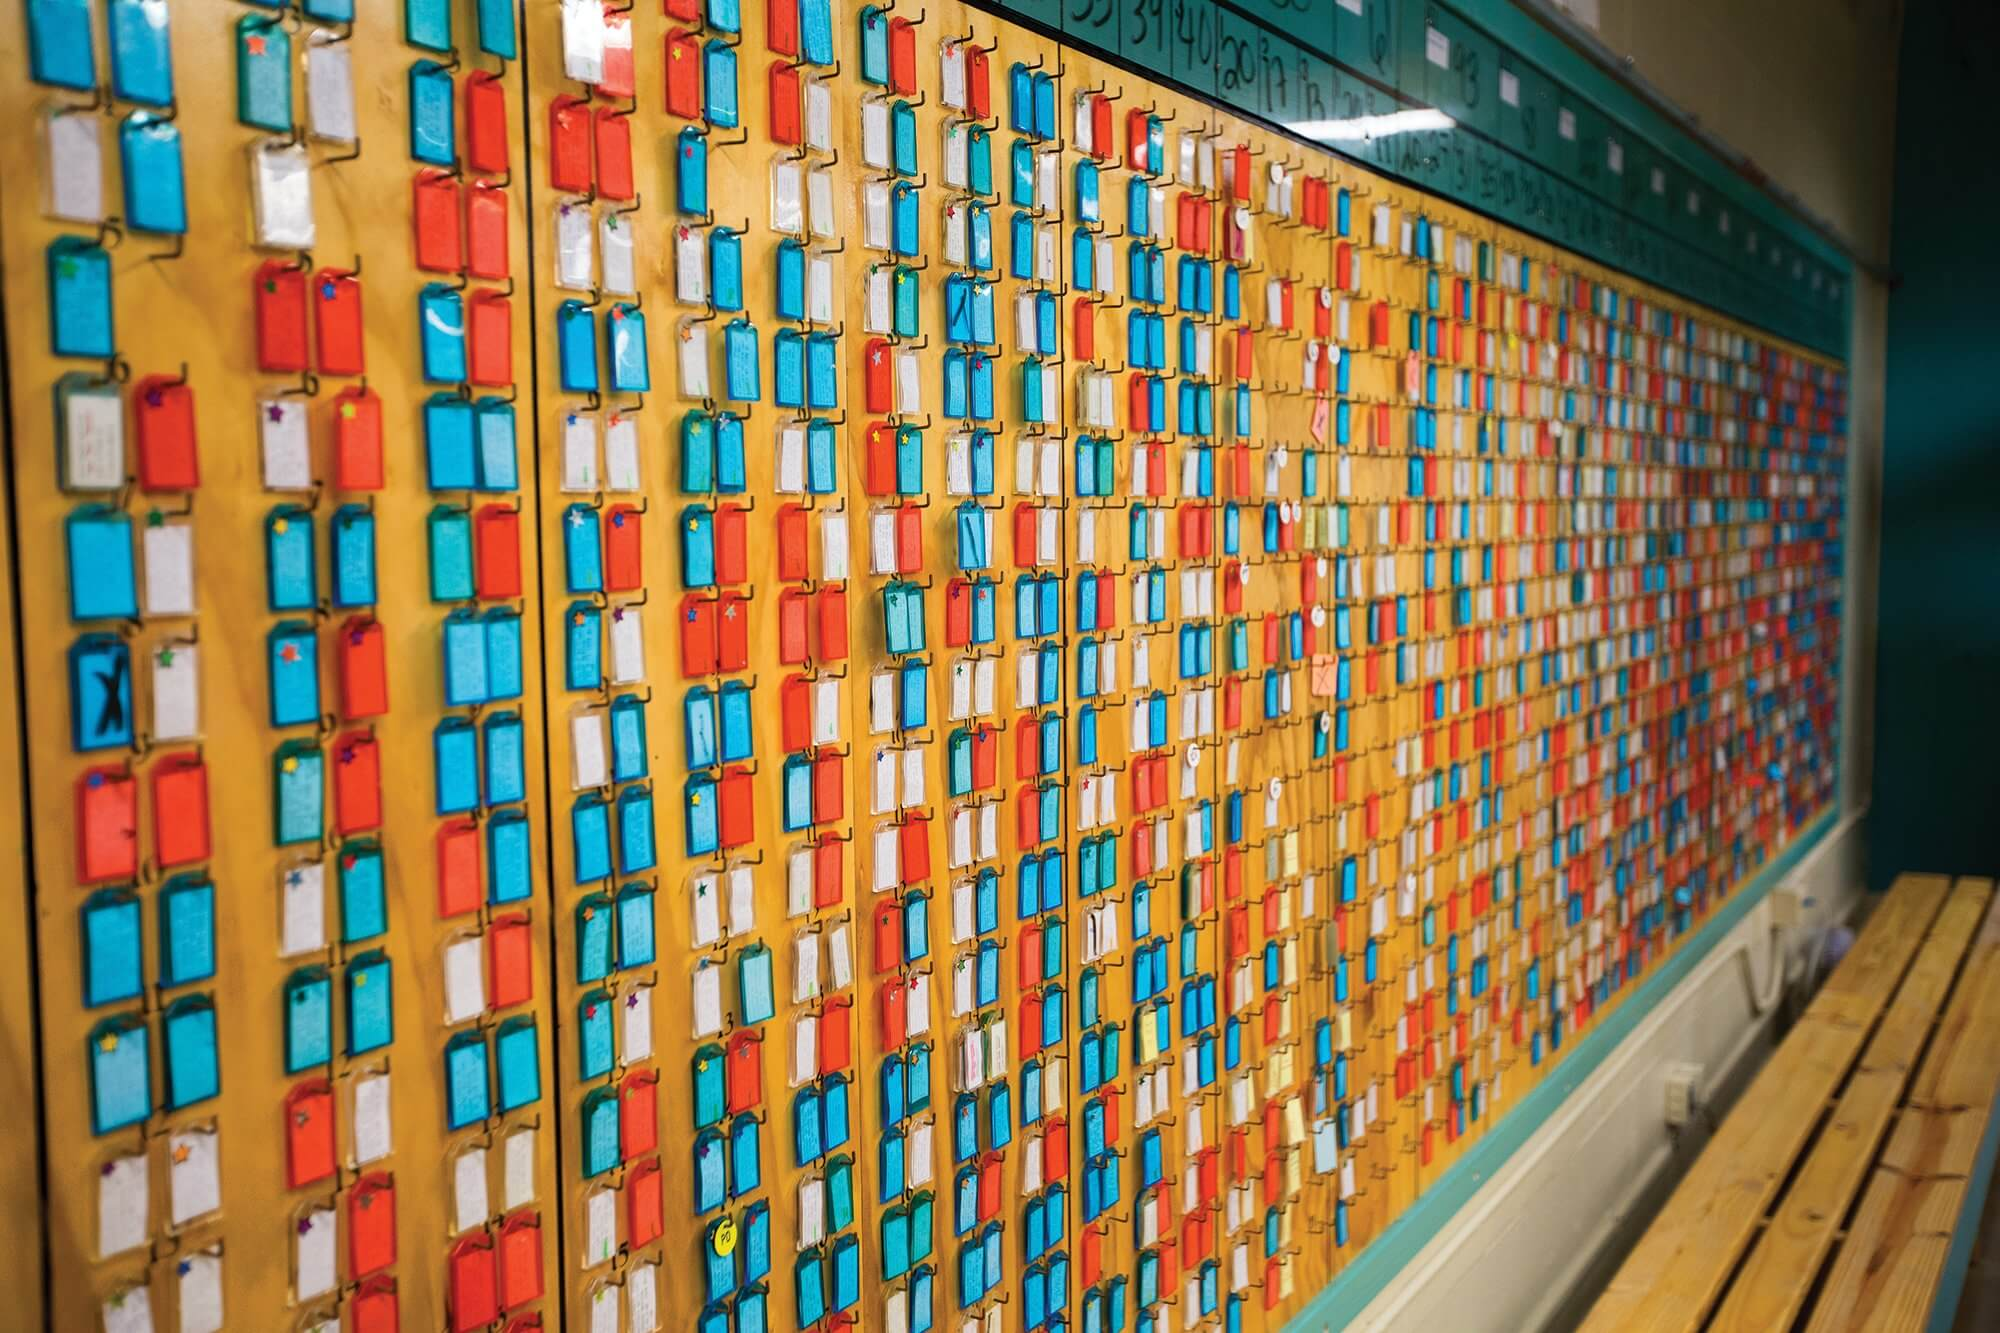 In the Count Room at the Estelle Unit, rows of colored tags serve as a visual census for every offender in the facility.